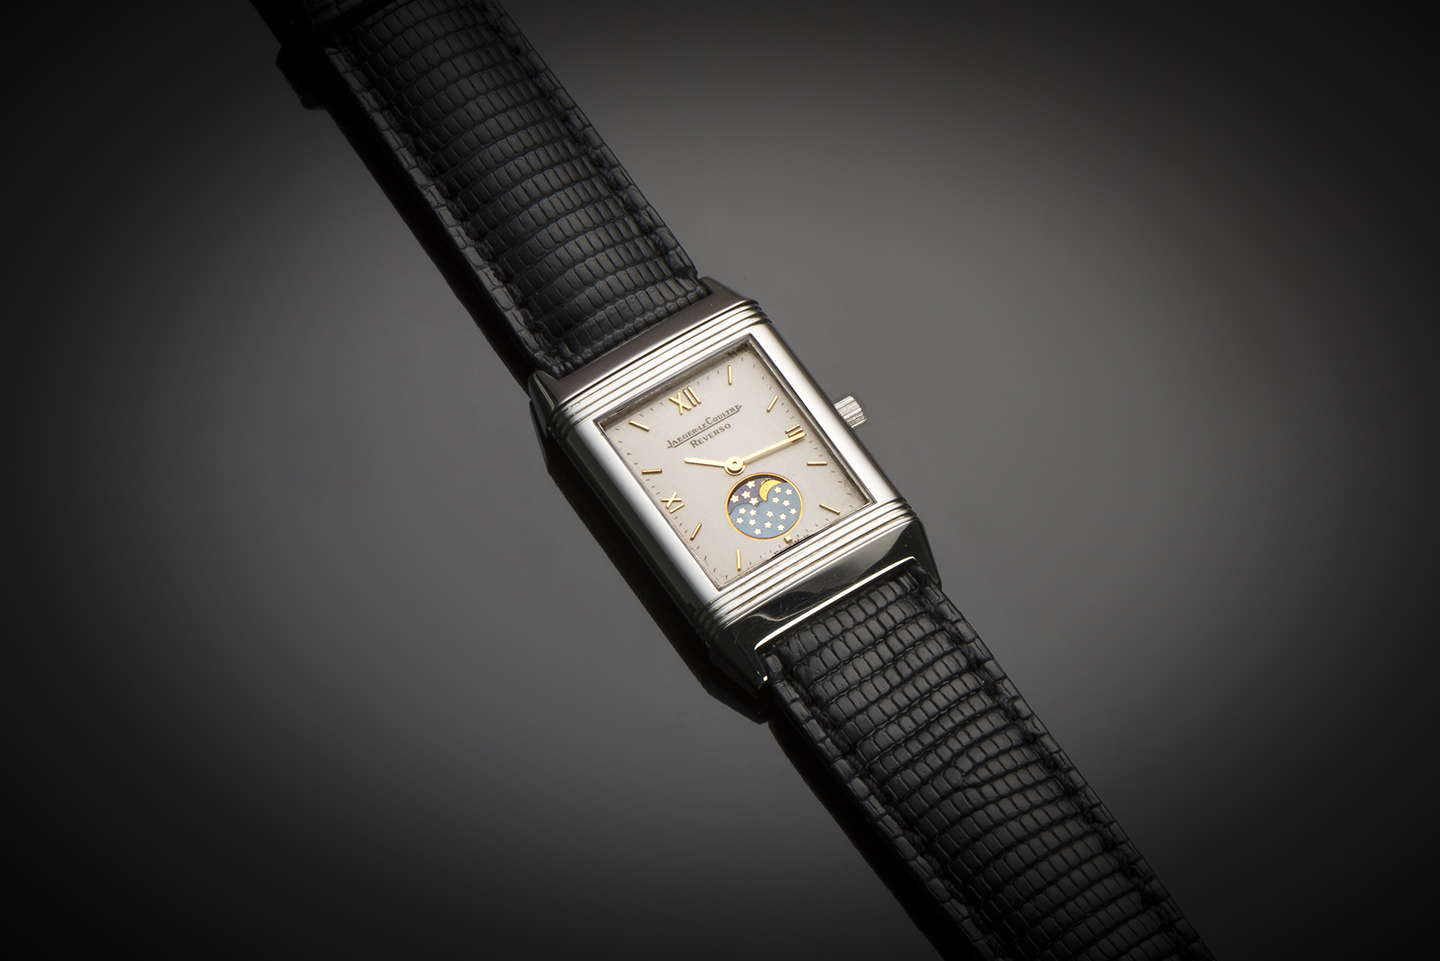 Jaeger-LeCoultre Reverso watch-1